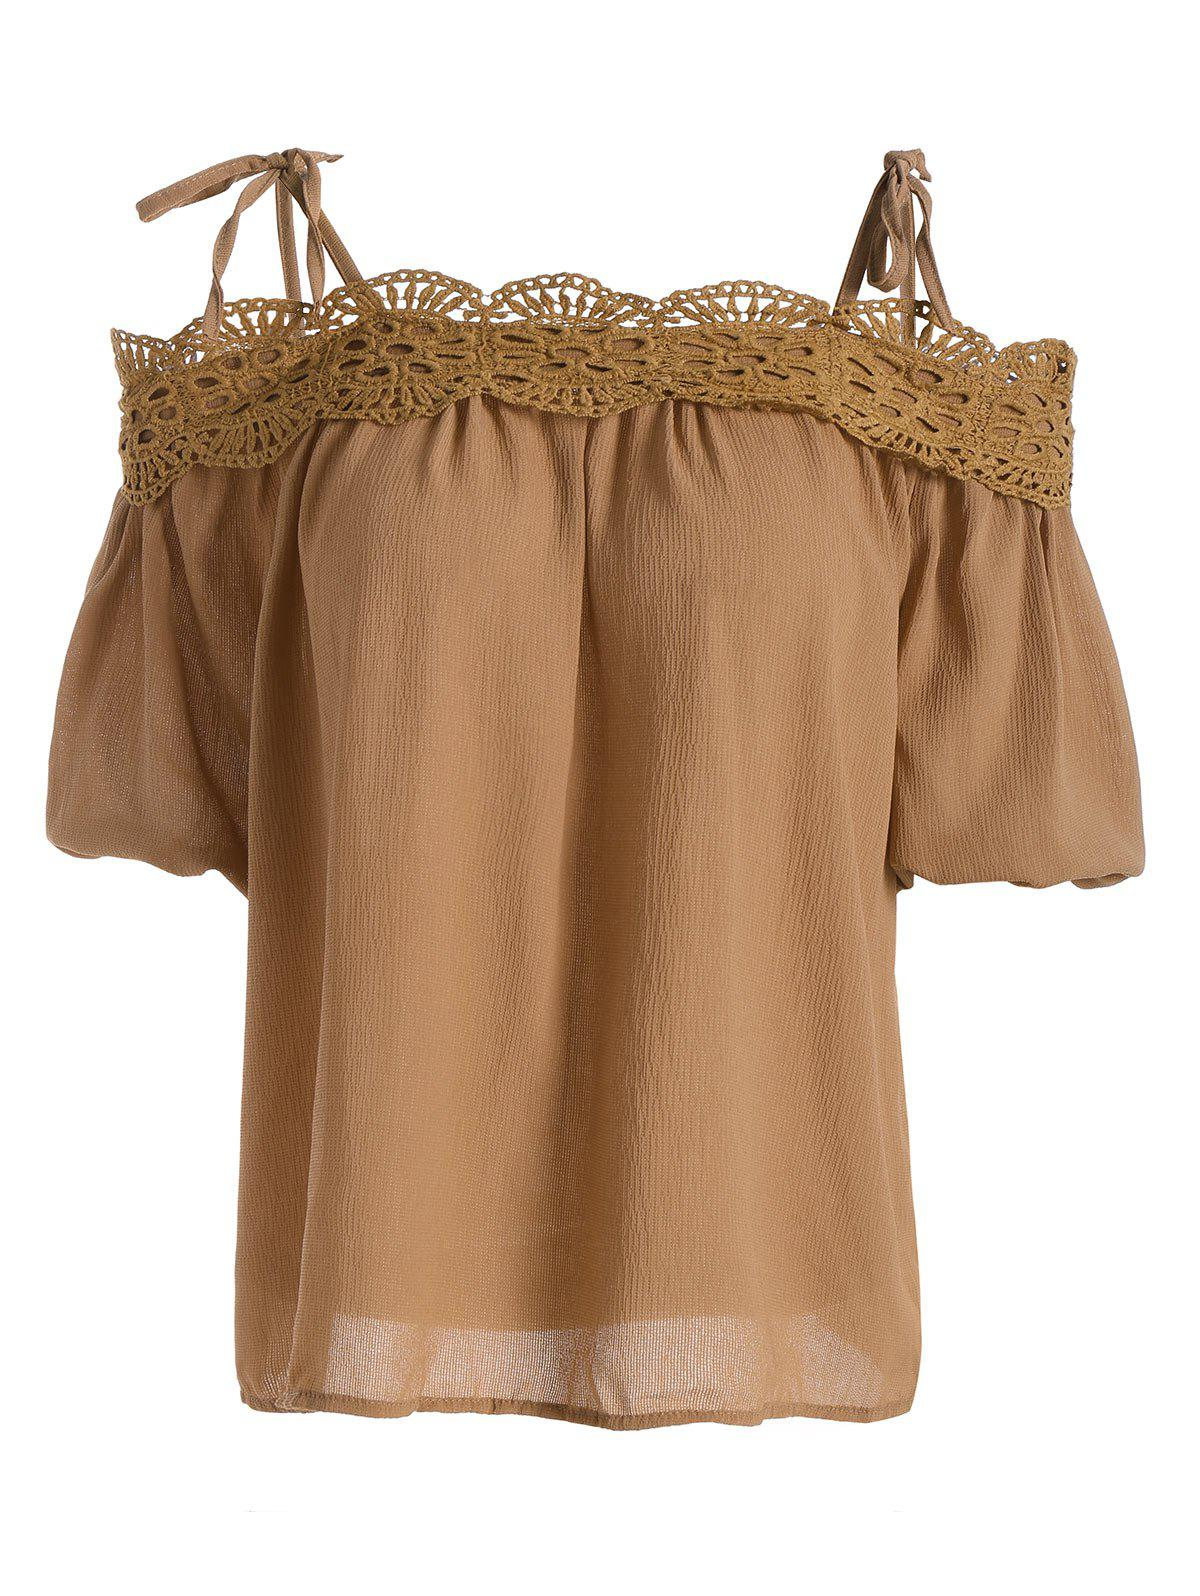 Spaghetti Strap Lace Crochet Chiffon Top - DARK KHAKI ONE SIZE(FIT SIZE XS TO M)